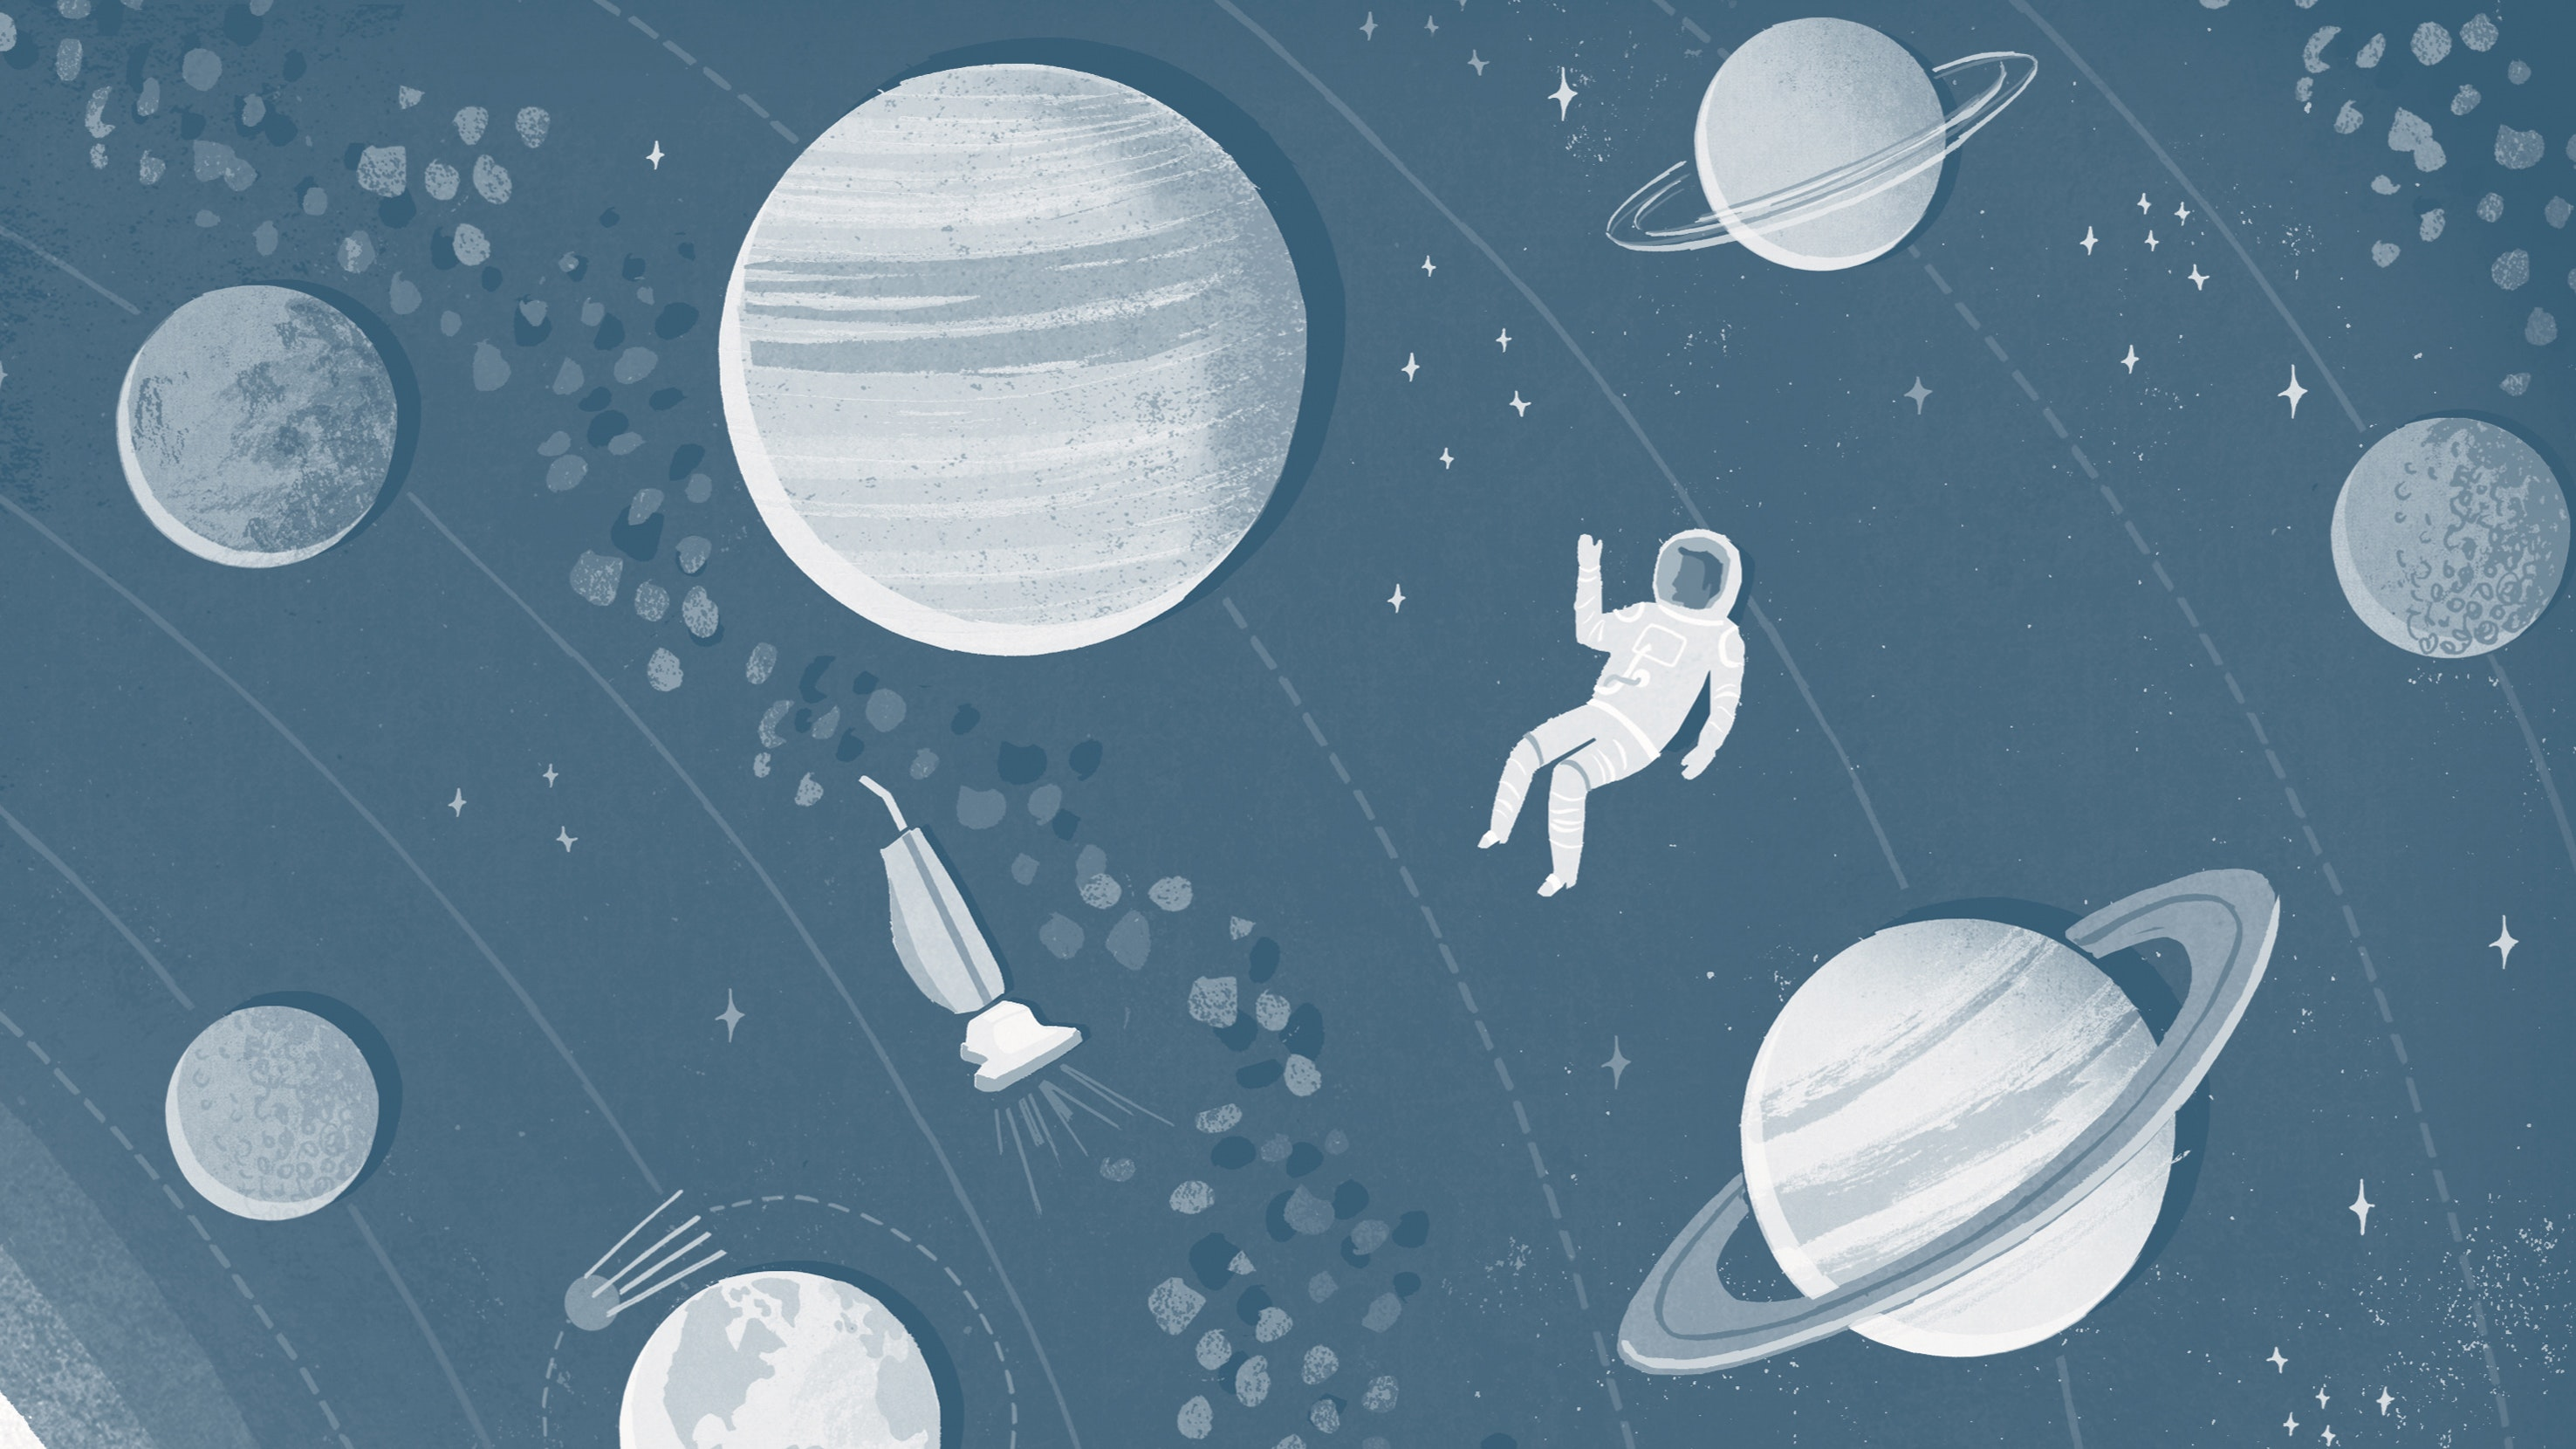 There Is Still A Lot To Learn About The Universe, But What If We Told You  Some Of The Popular Facts We Swear By About Space Are Simply Not True?